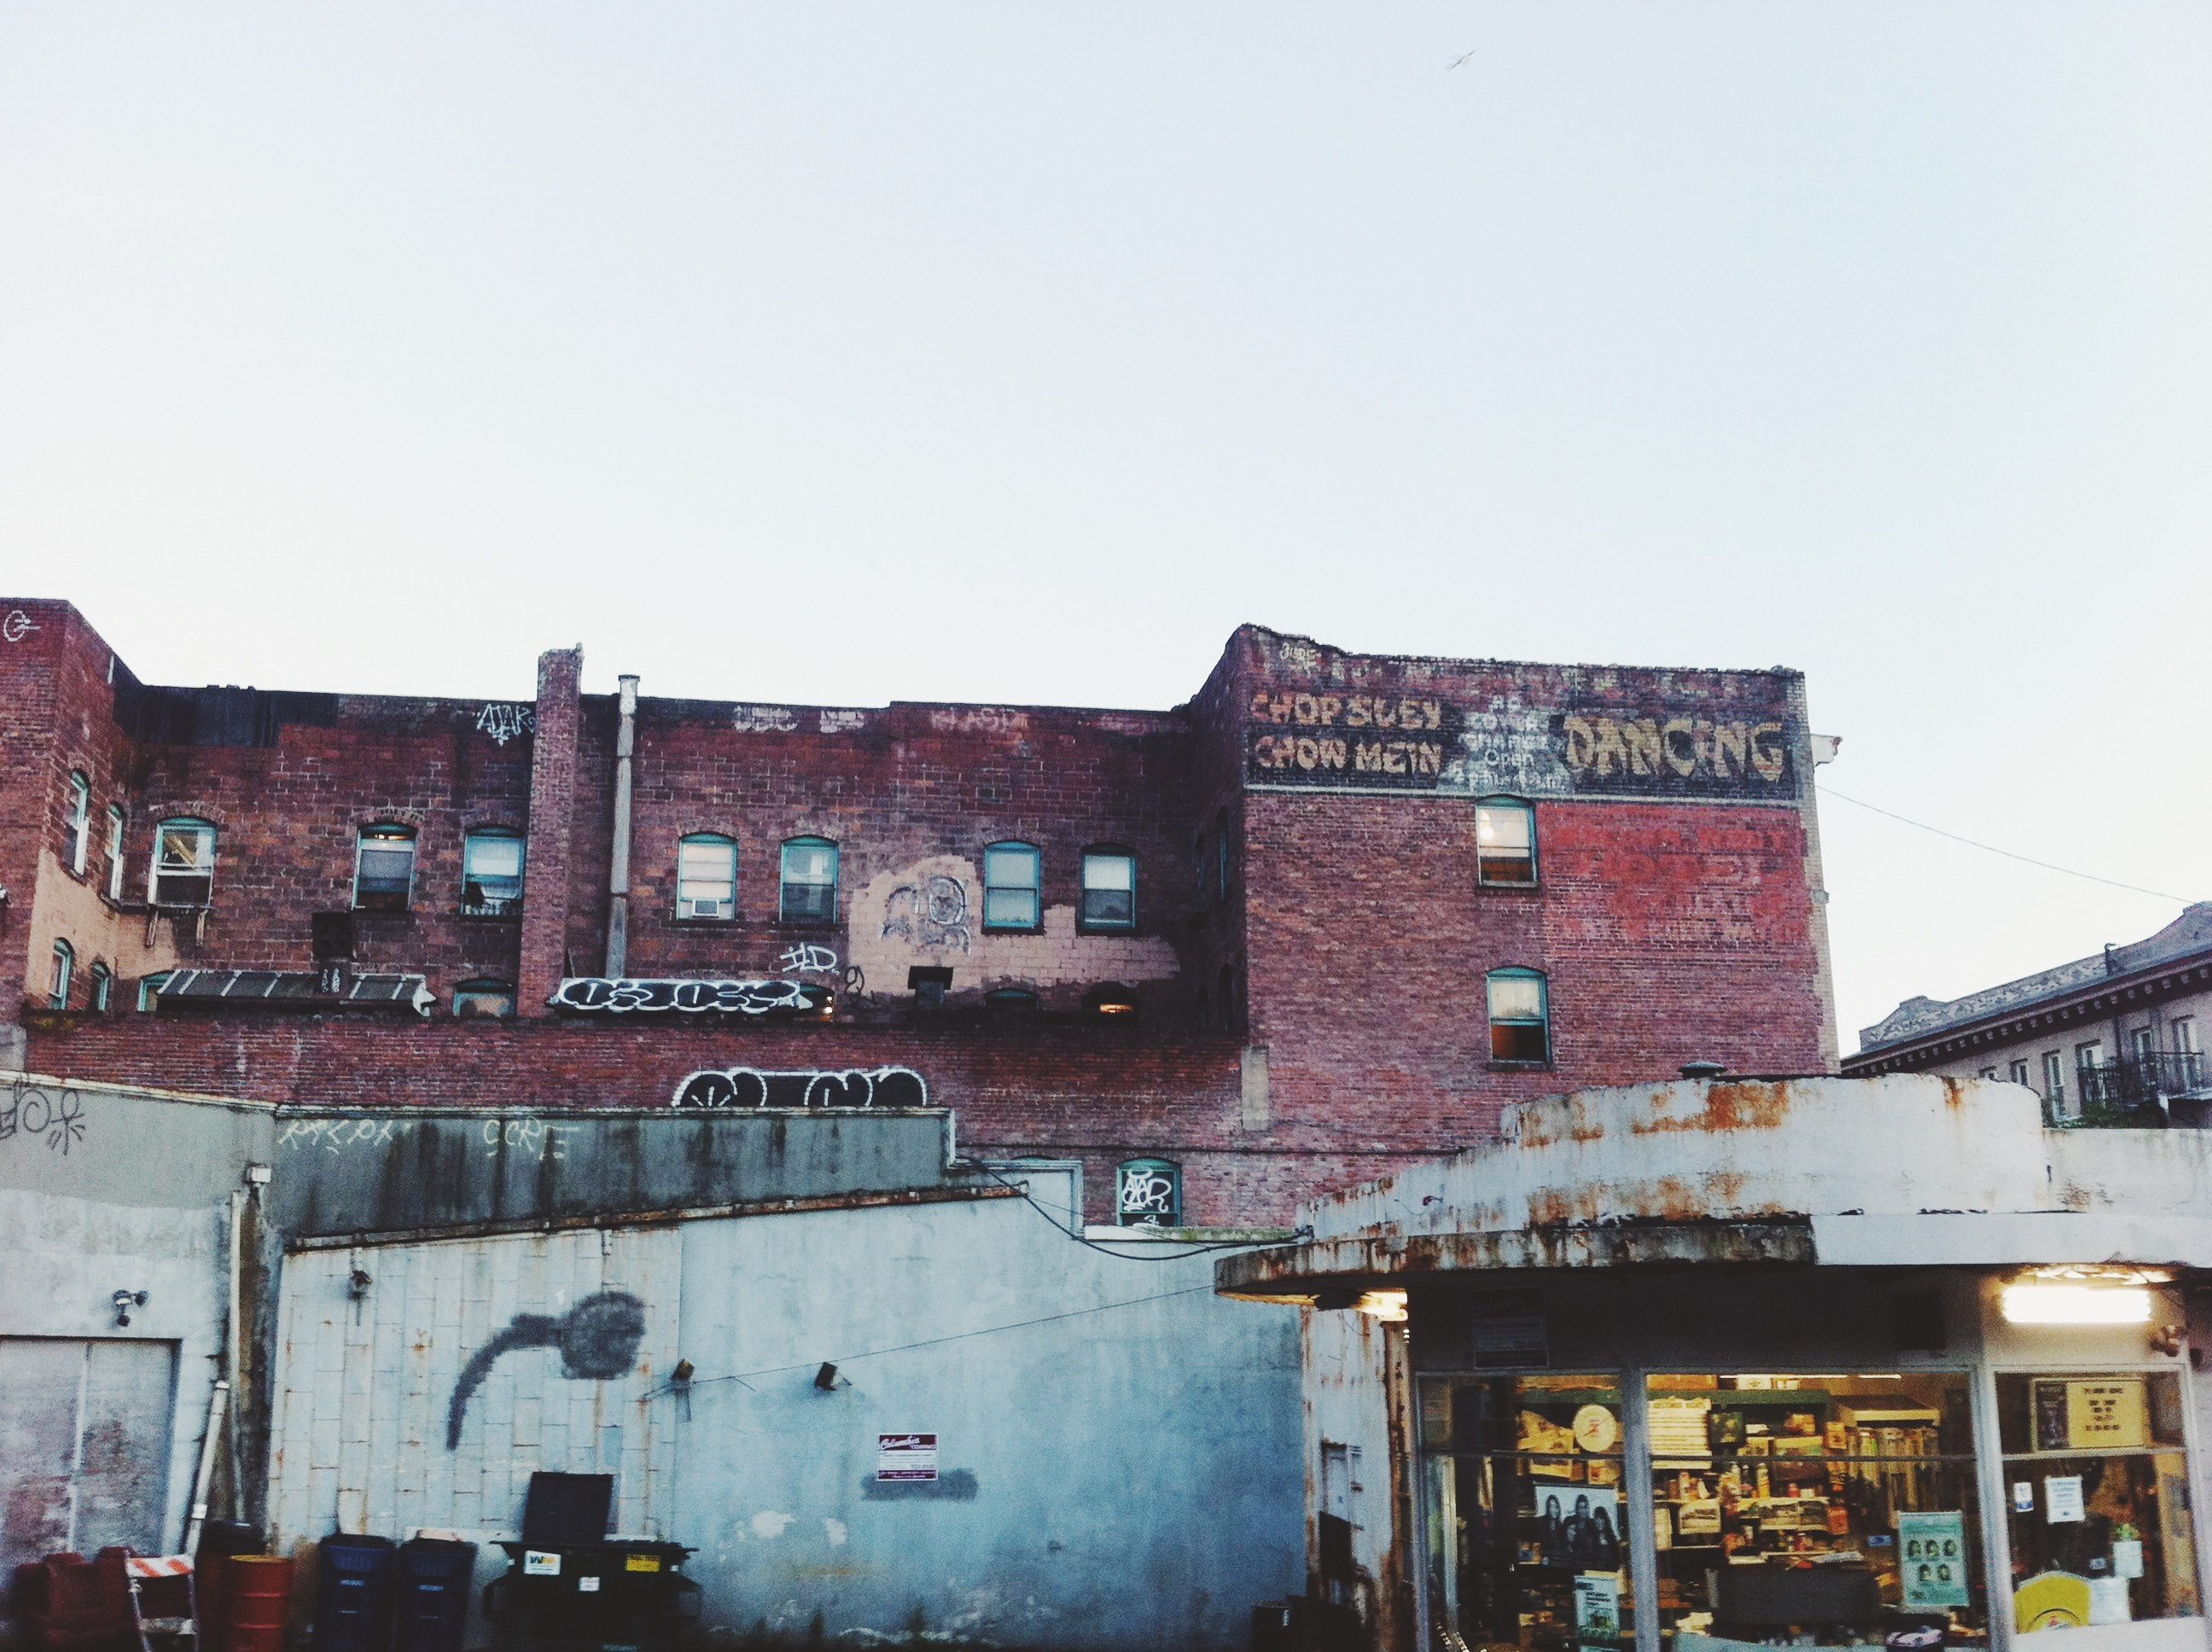 image description: photograph of some old buildings in Seattle International District/Chinatown, taken by 海水仙 hai shuixian